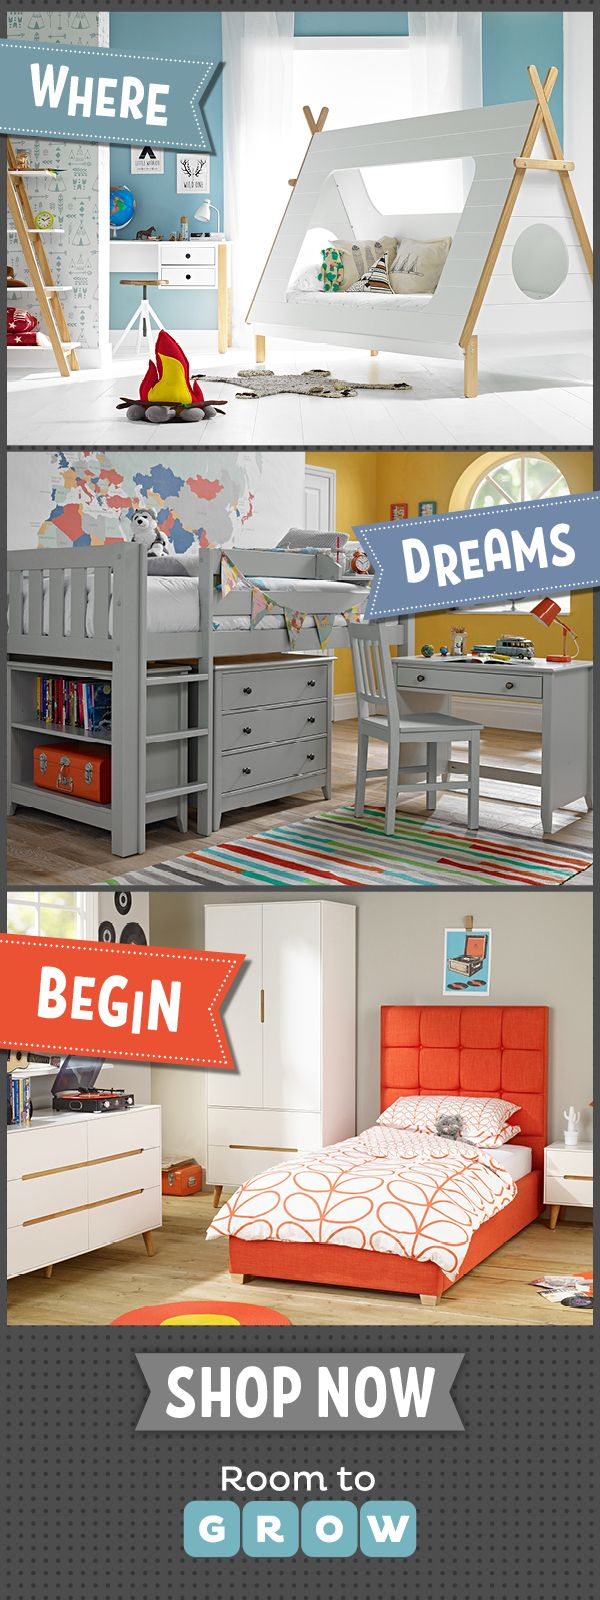 Loft bed with slide out desk  From a vast choice weuve handpicked the very best childrenus beds